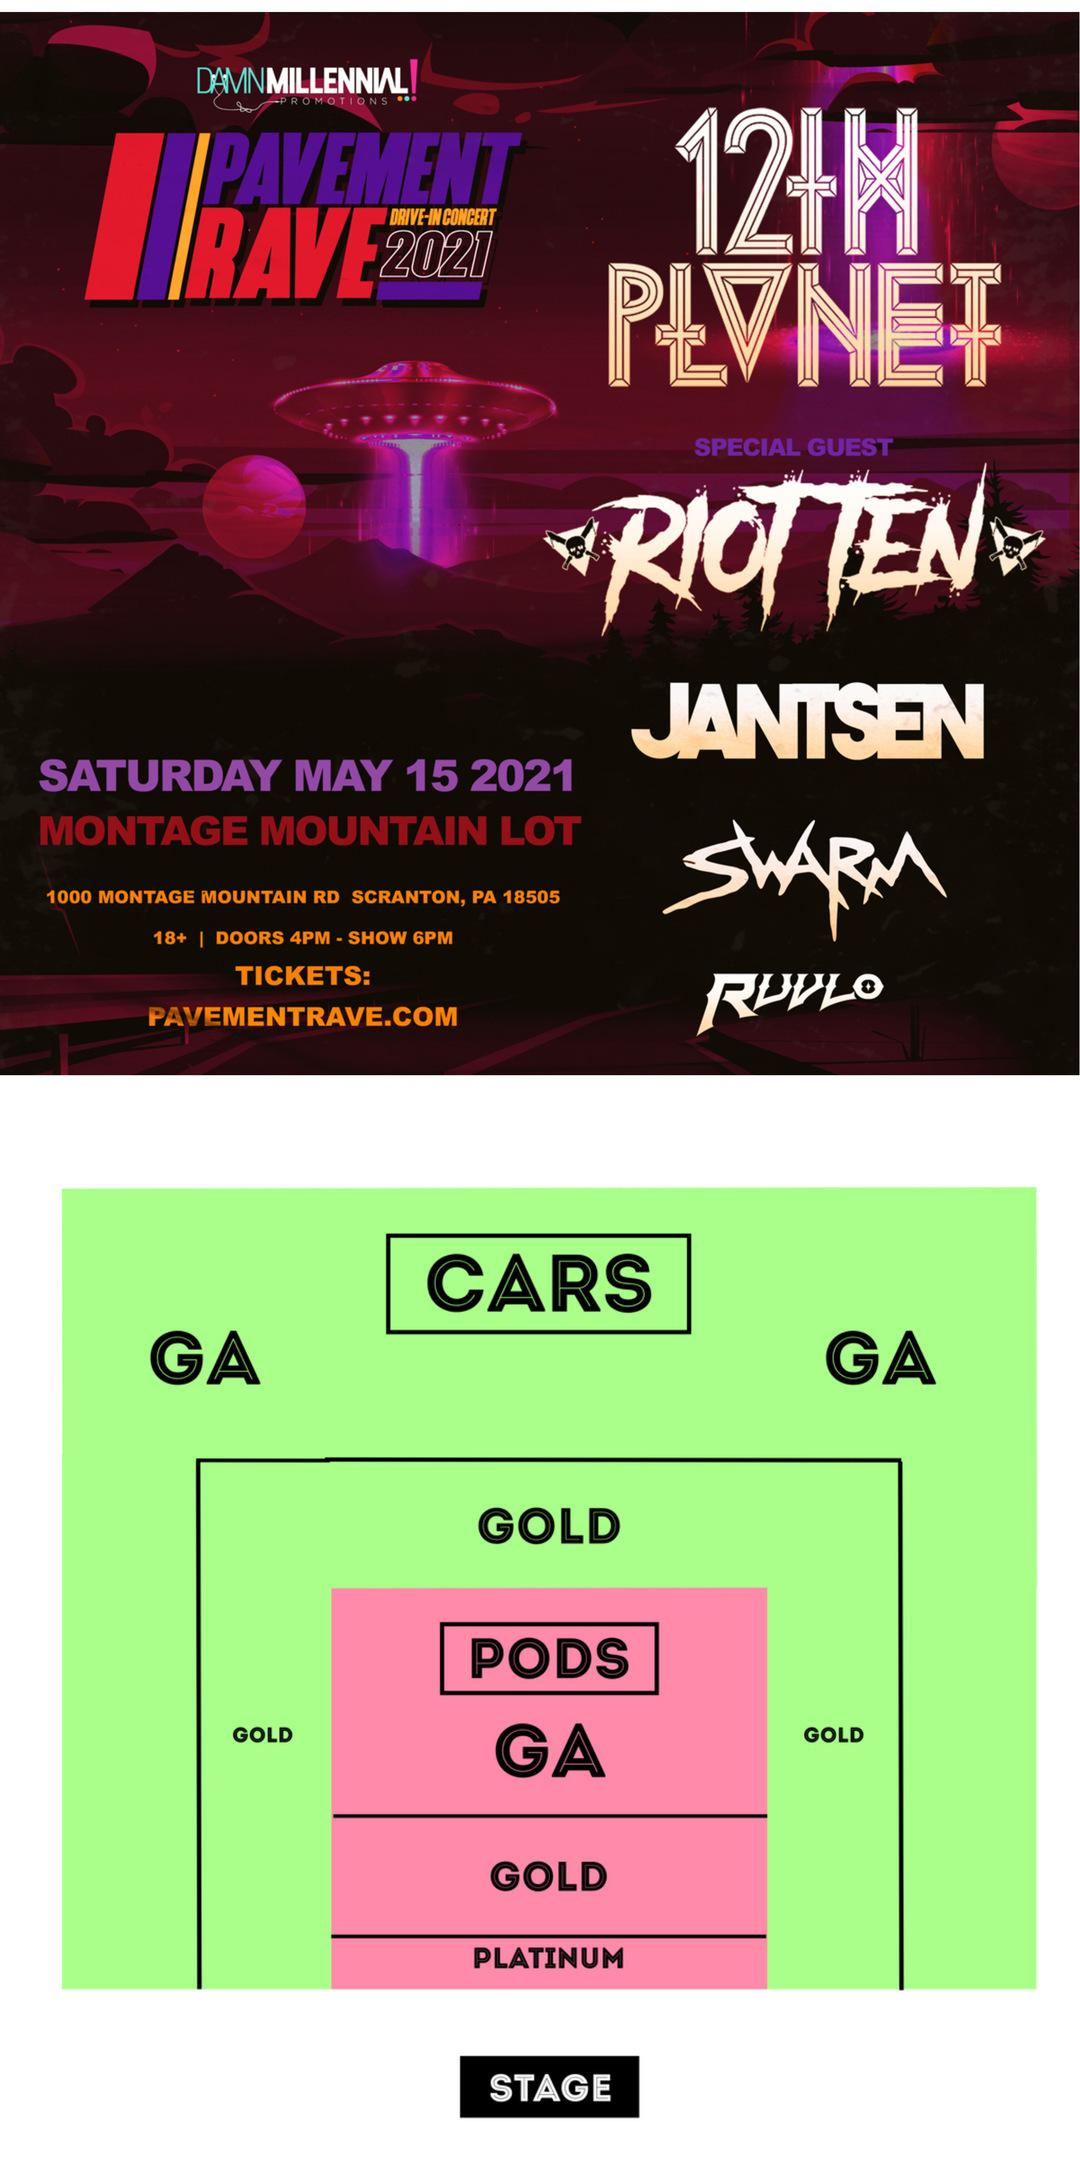 Event flyer graphic